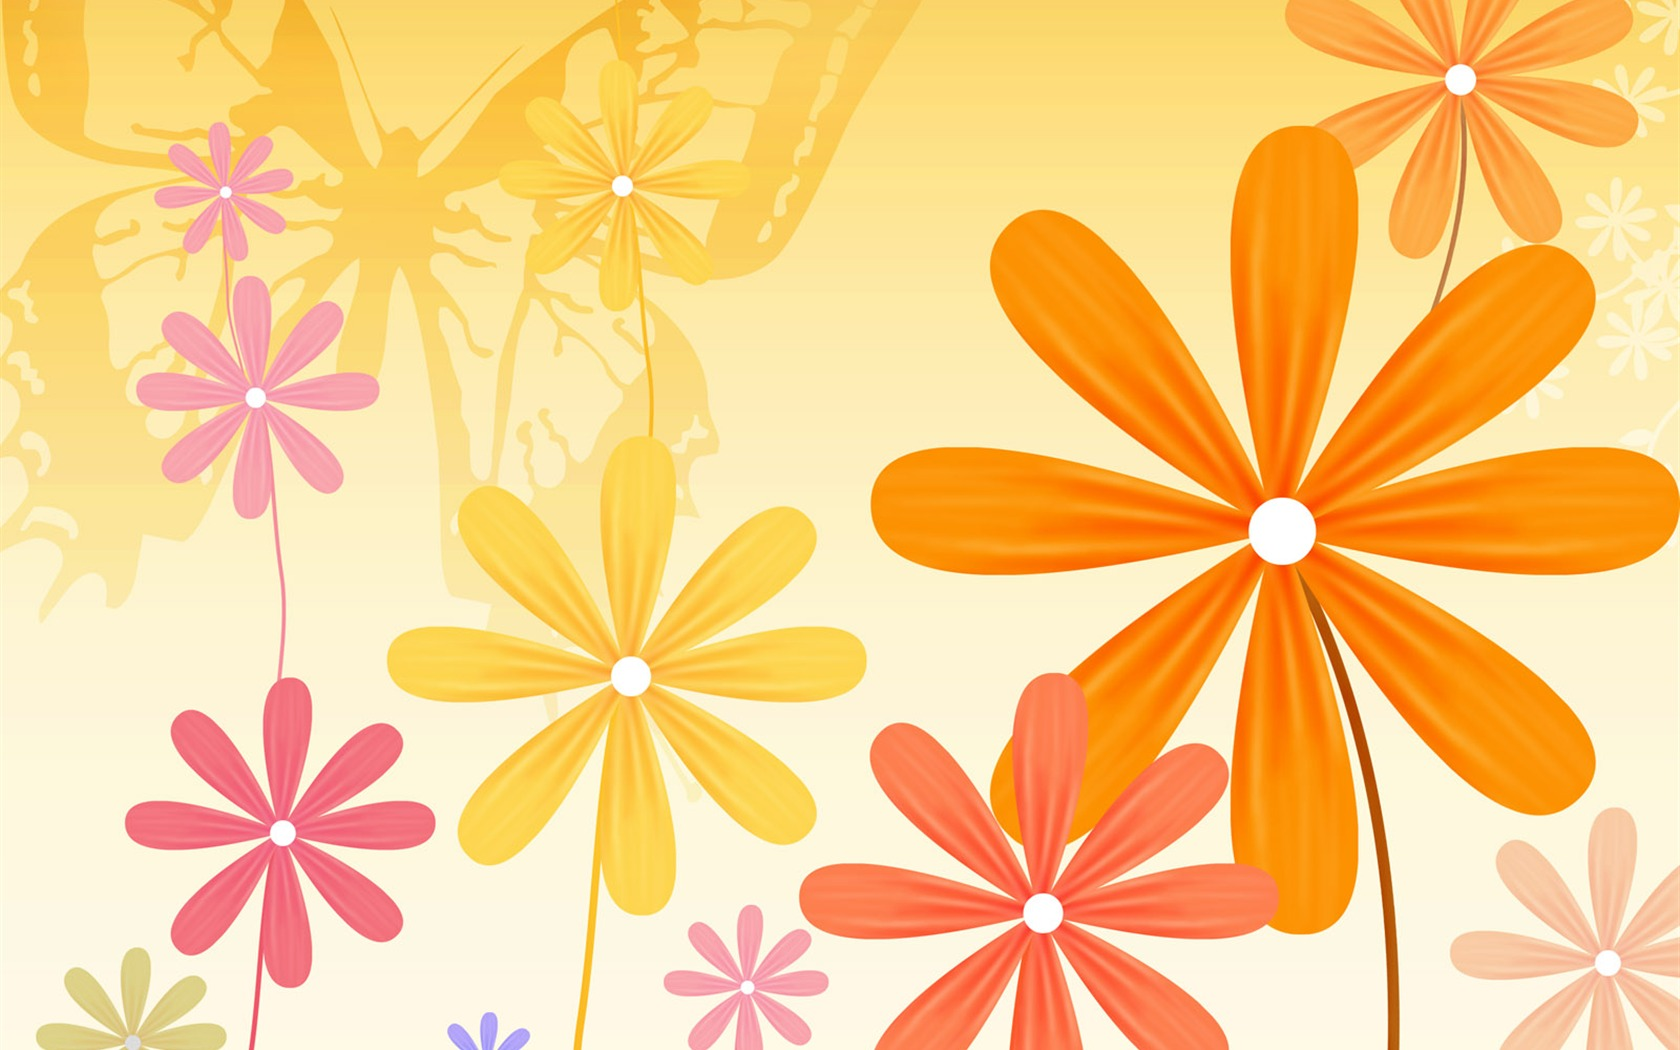 Floral Design Illustration Papier Peint 17 1680x1050